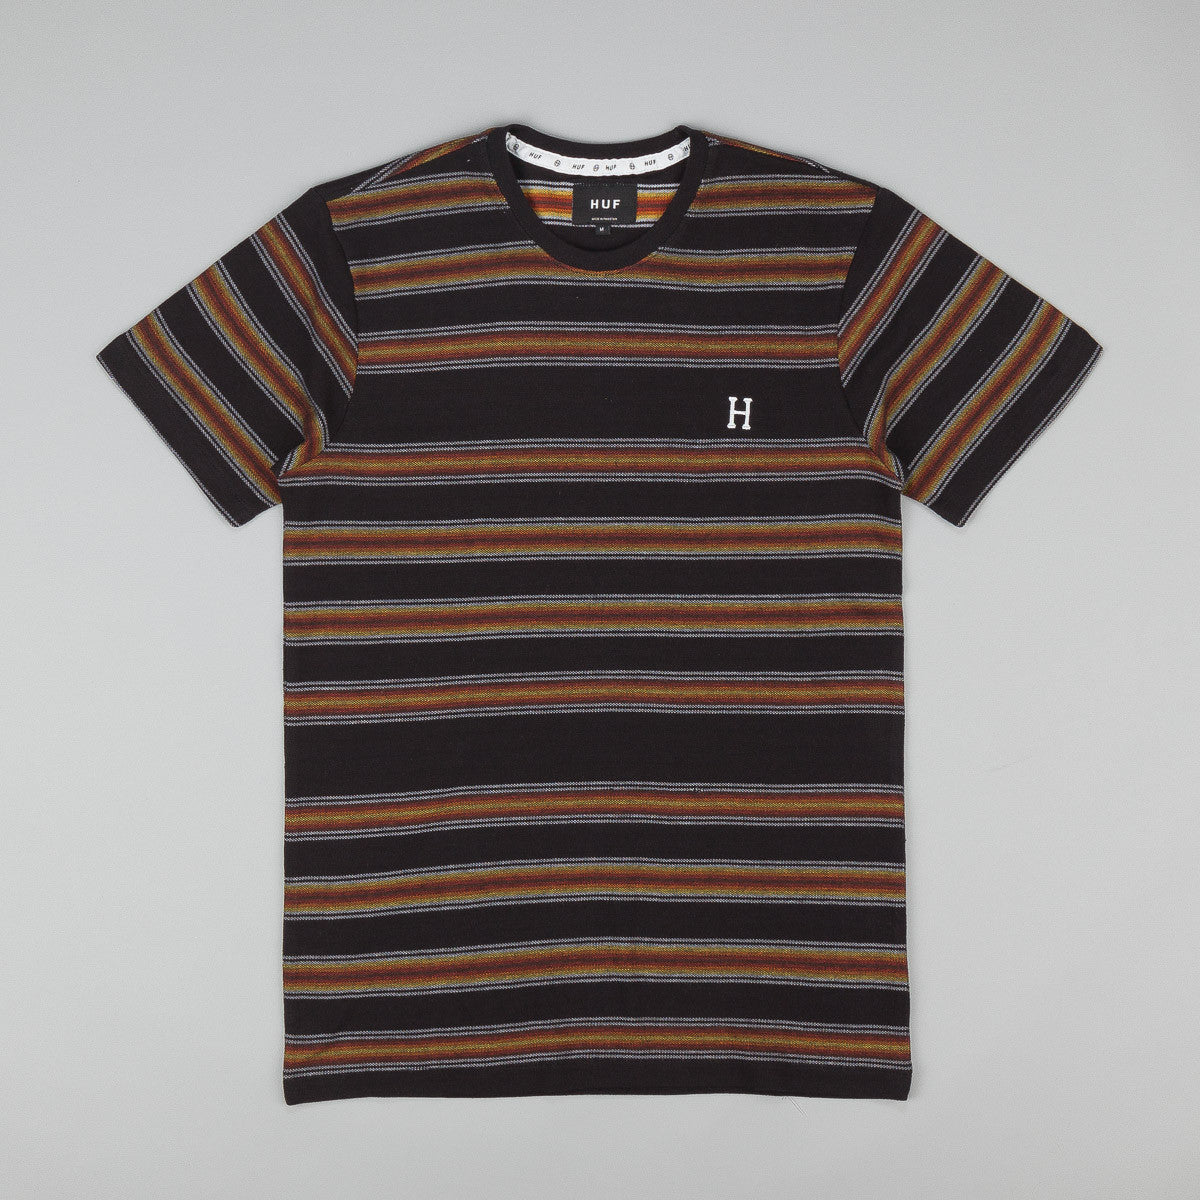 HUF Serape T-Shirt - Black